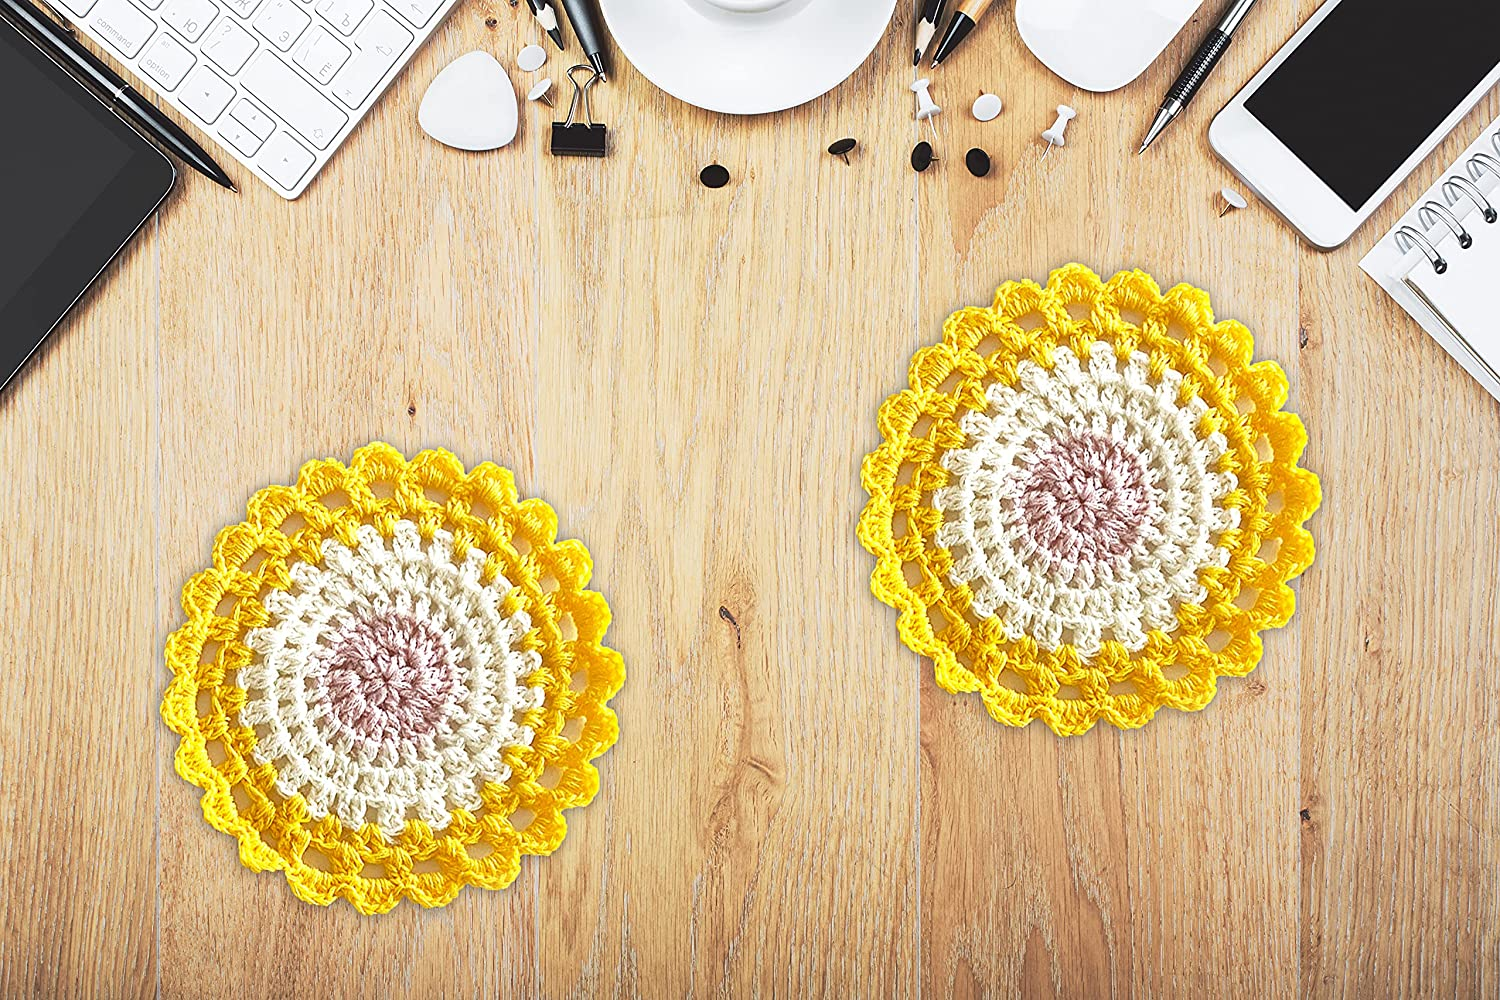 Crochet Handmade Coasters - 2 Holde At the price Pieces Ranking TOP4 Yellow Cotton Coaster